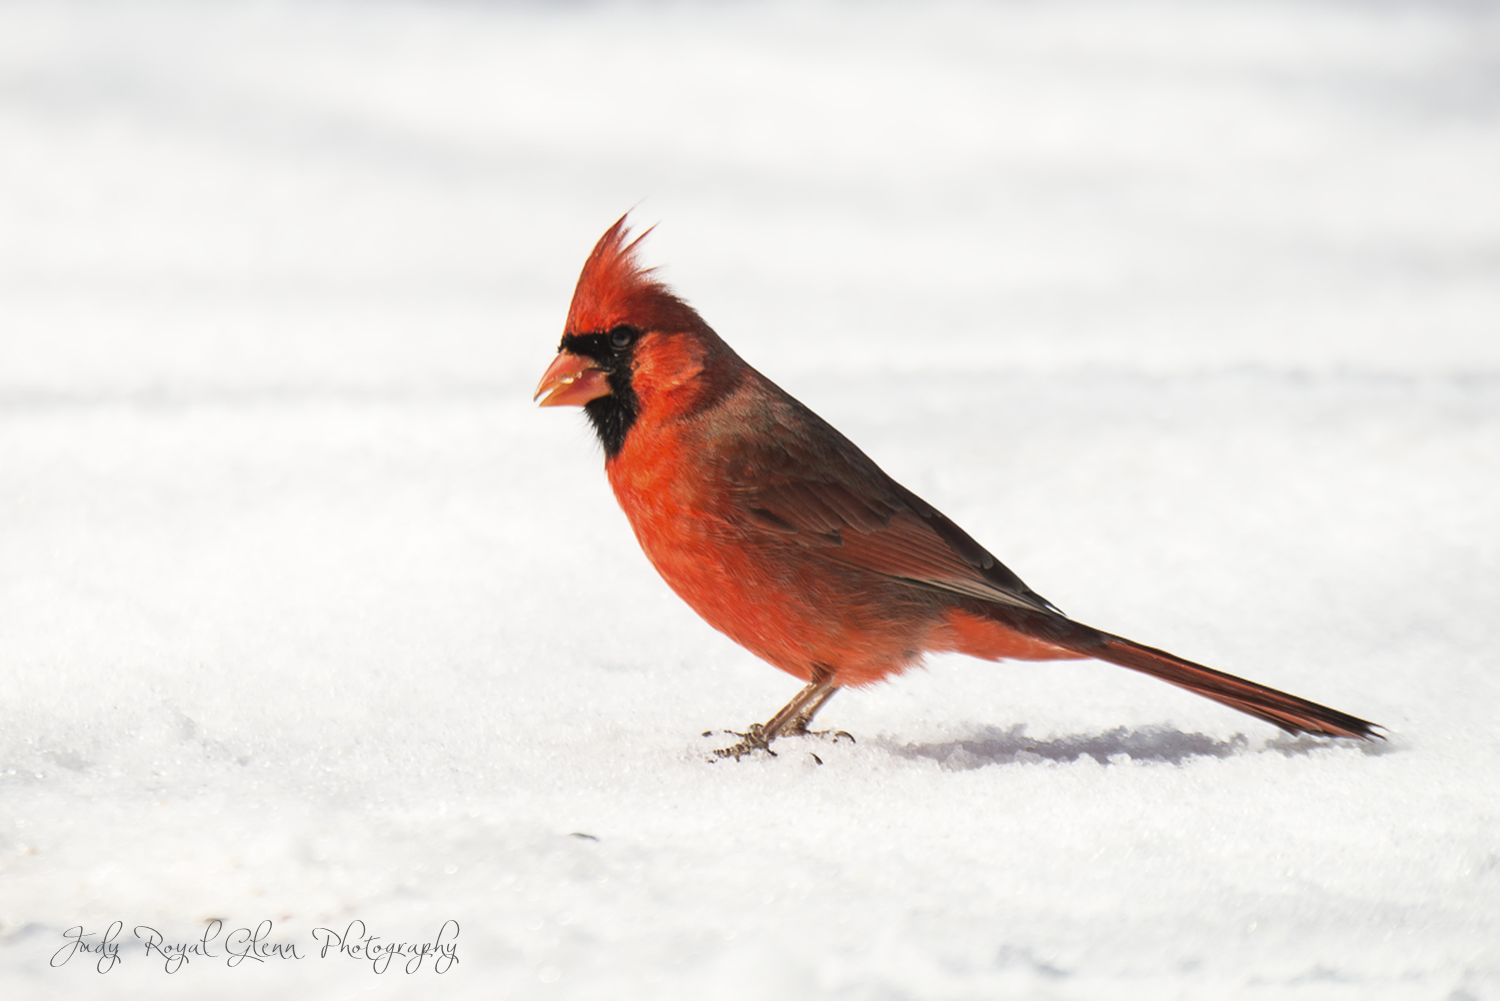 A touch of red for Valentine's Day! A photograph of a Cardinal in the snow in Athens, Georgia.  Story here:http://seeingthroughgodseyesphotos.blogspot.com/2014/02/a-watchful-eye.html